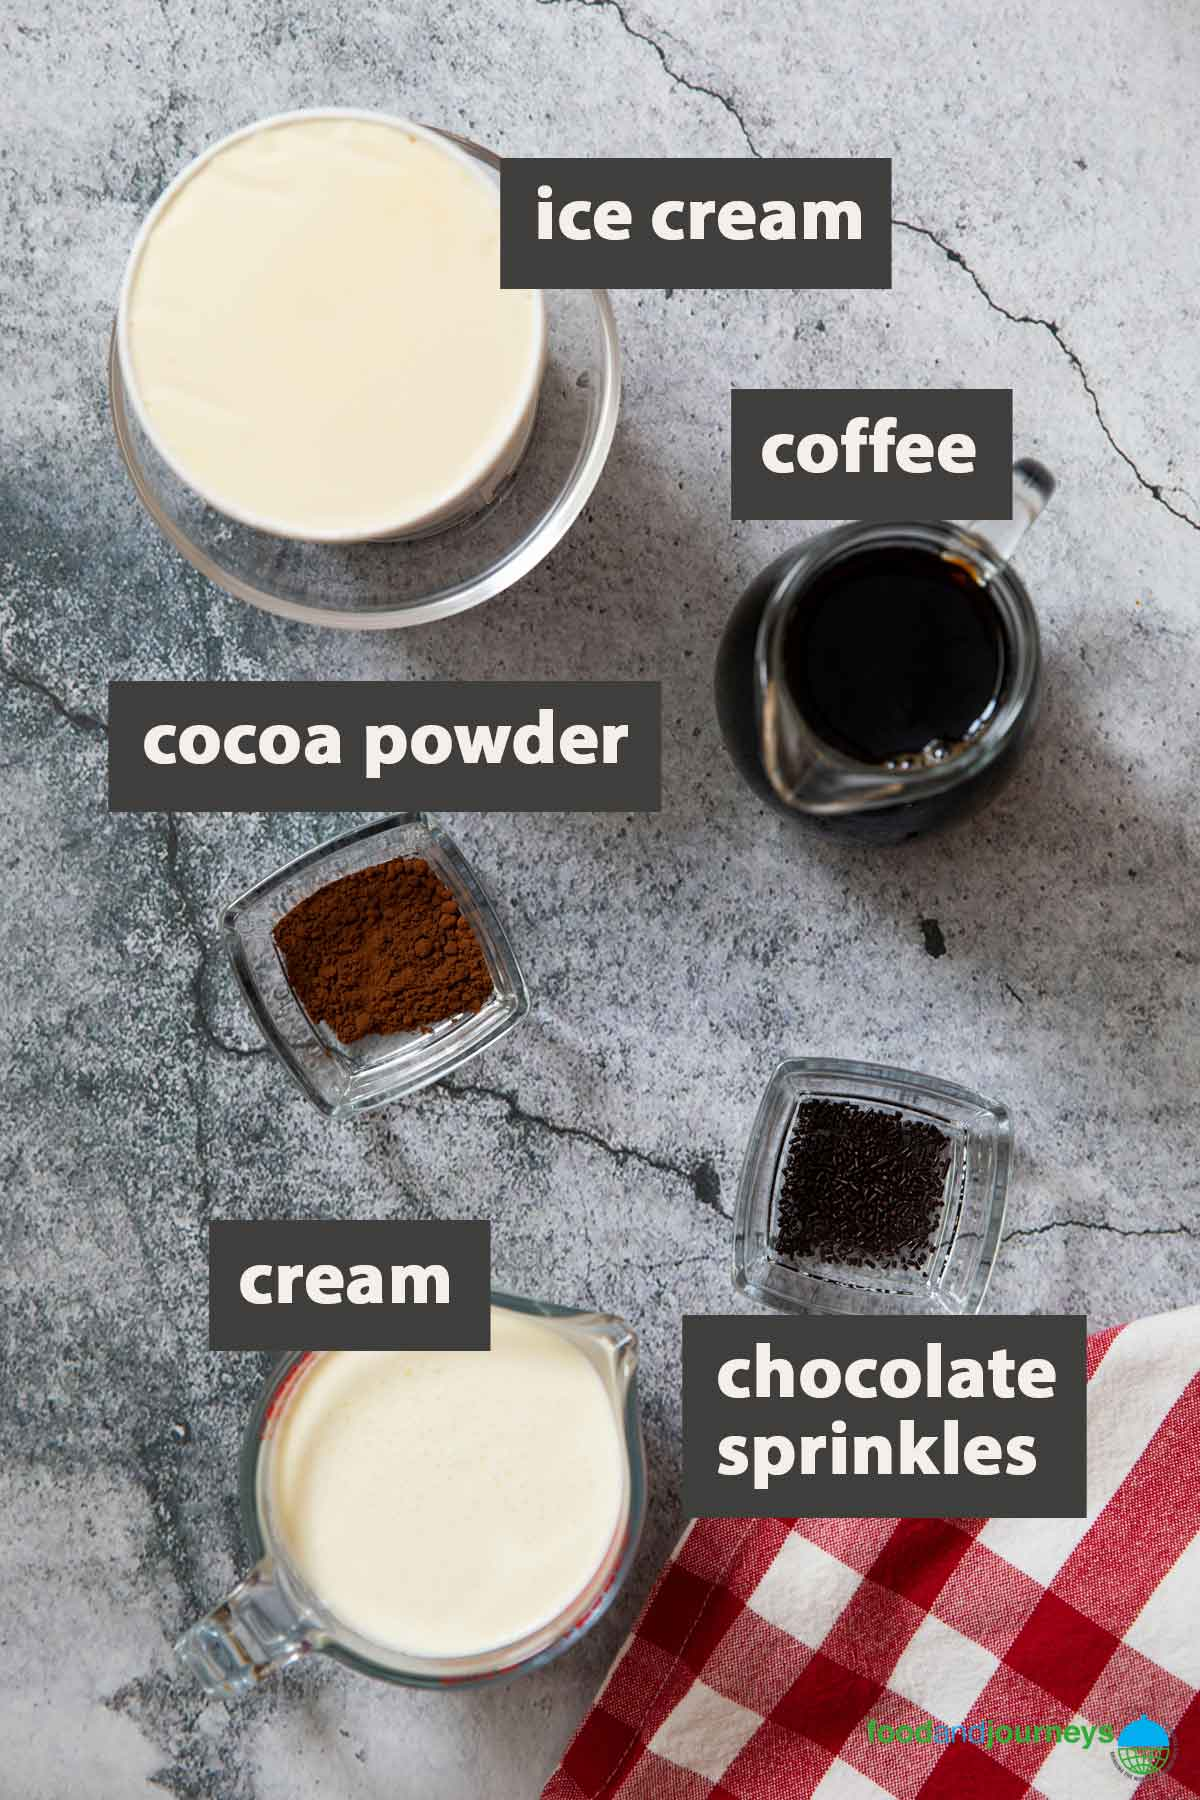 Image showing all the ingredients you need for preparing German Iced Coffee at home.